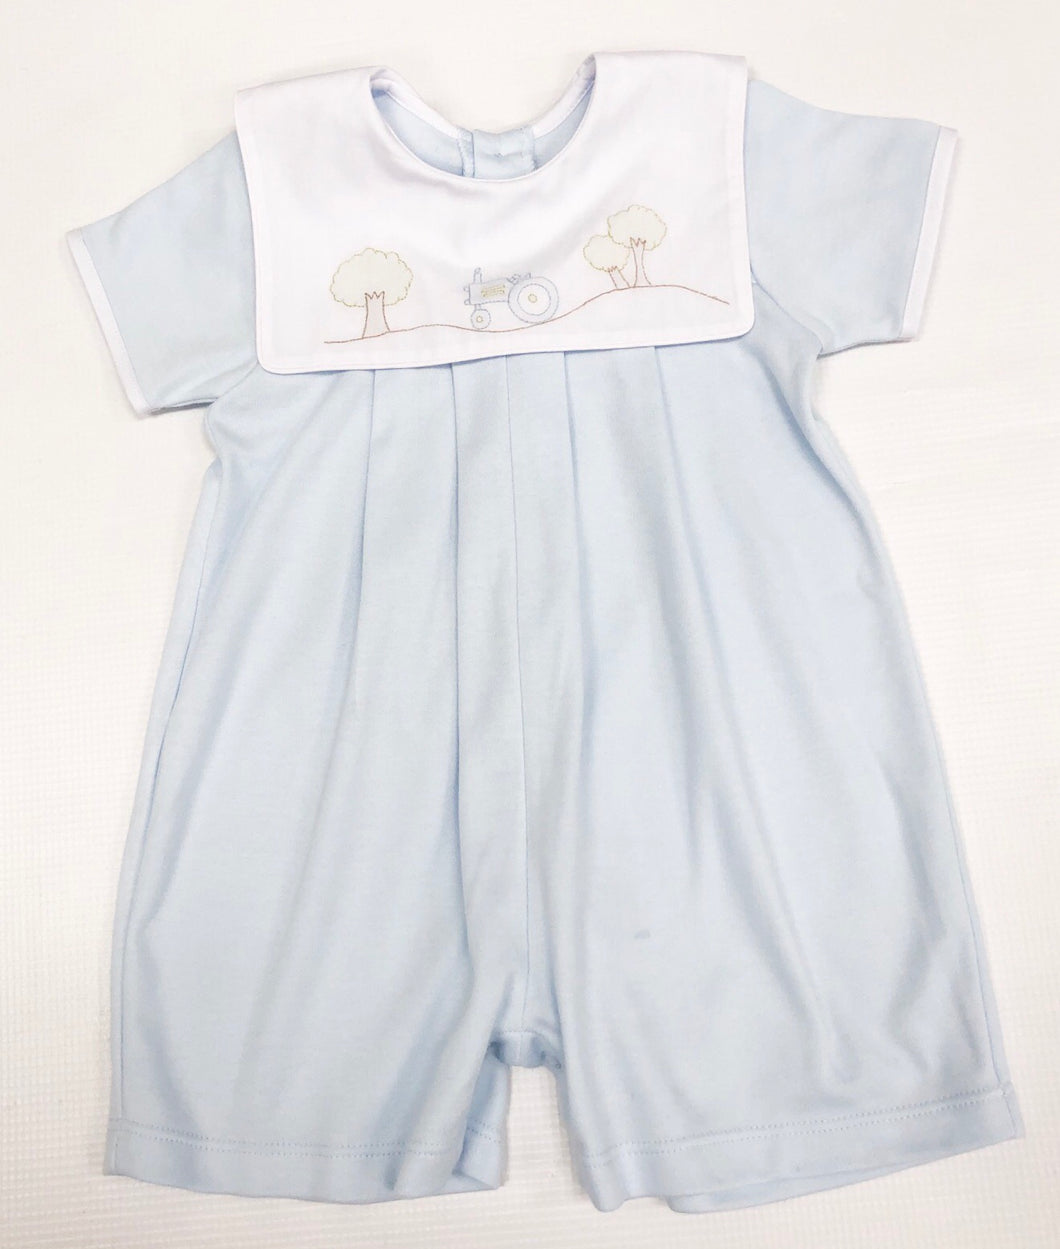 Blue Knit Shortall w/ Tractor Embroidery